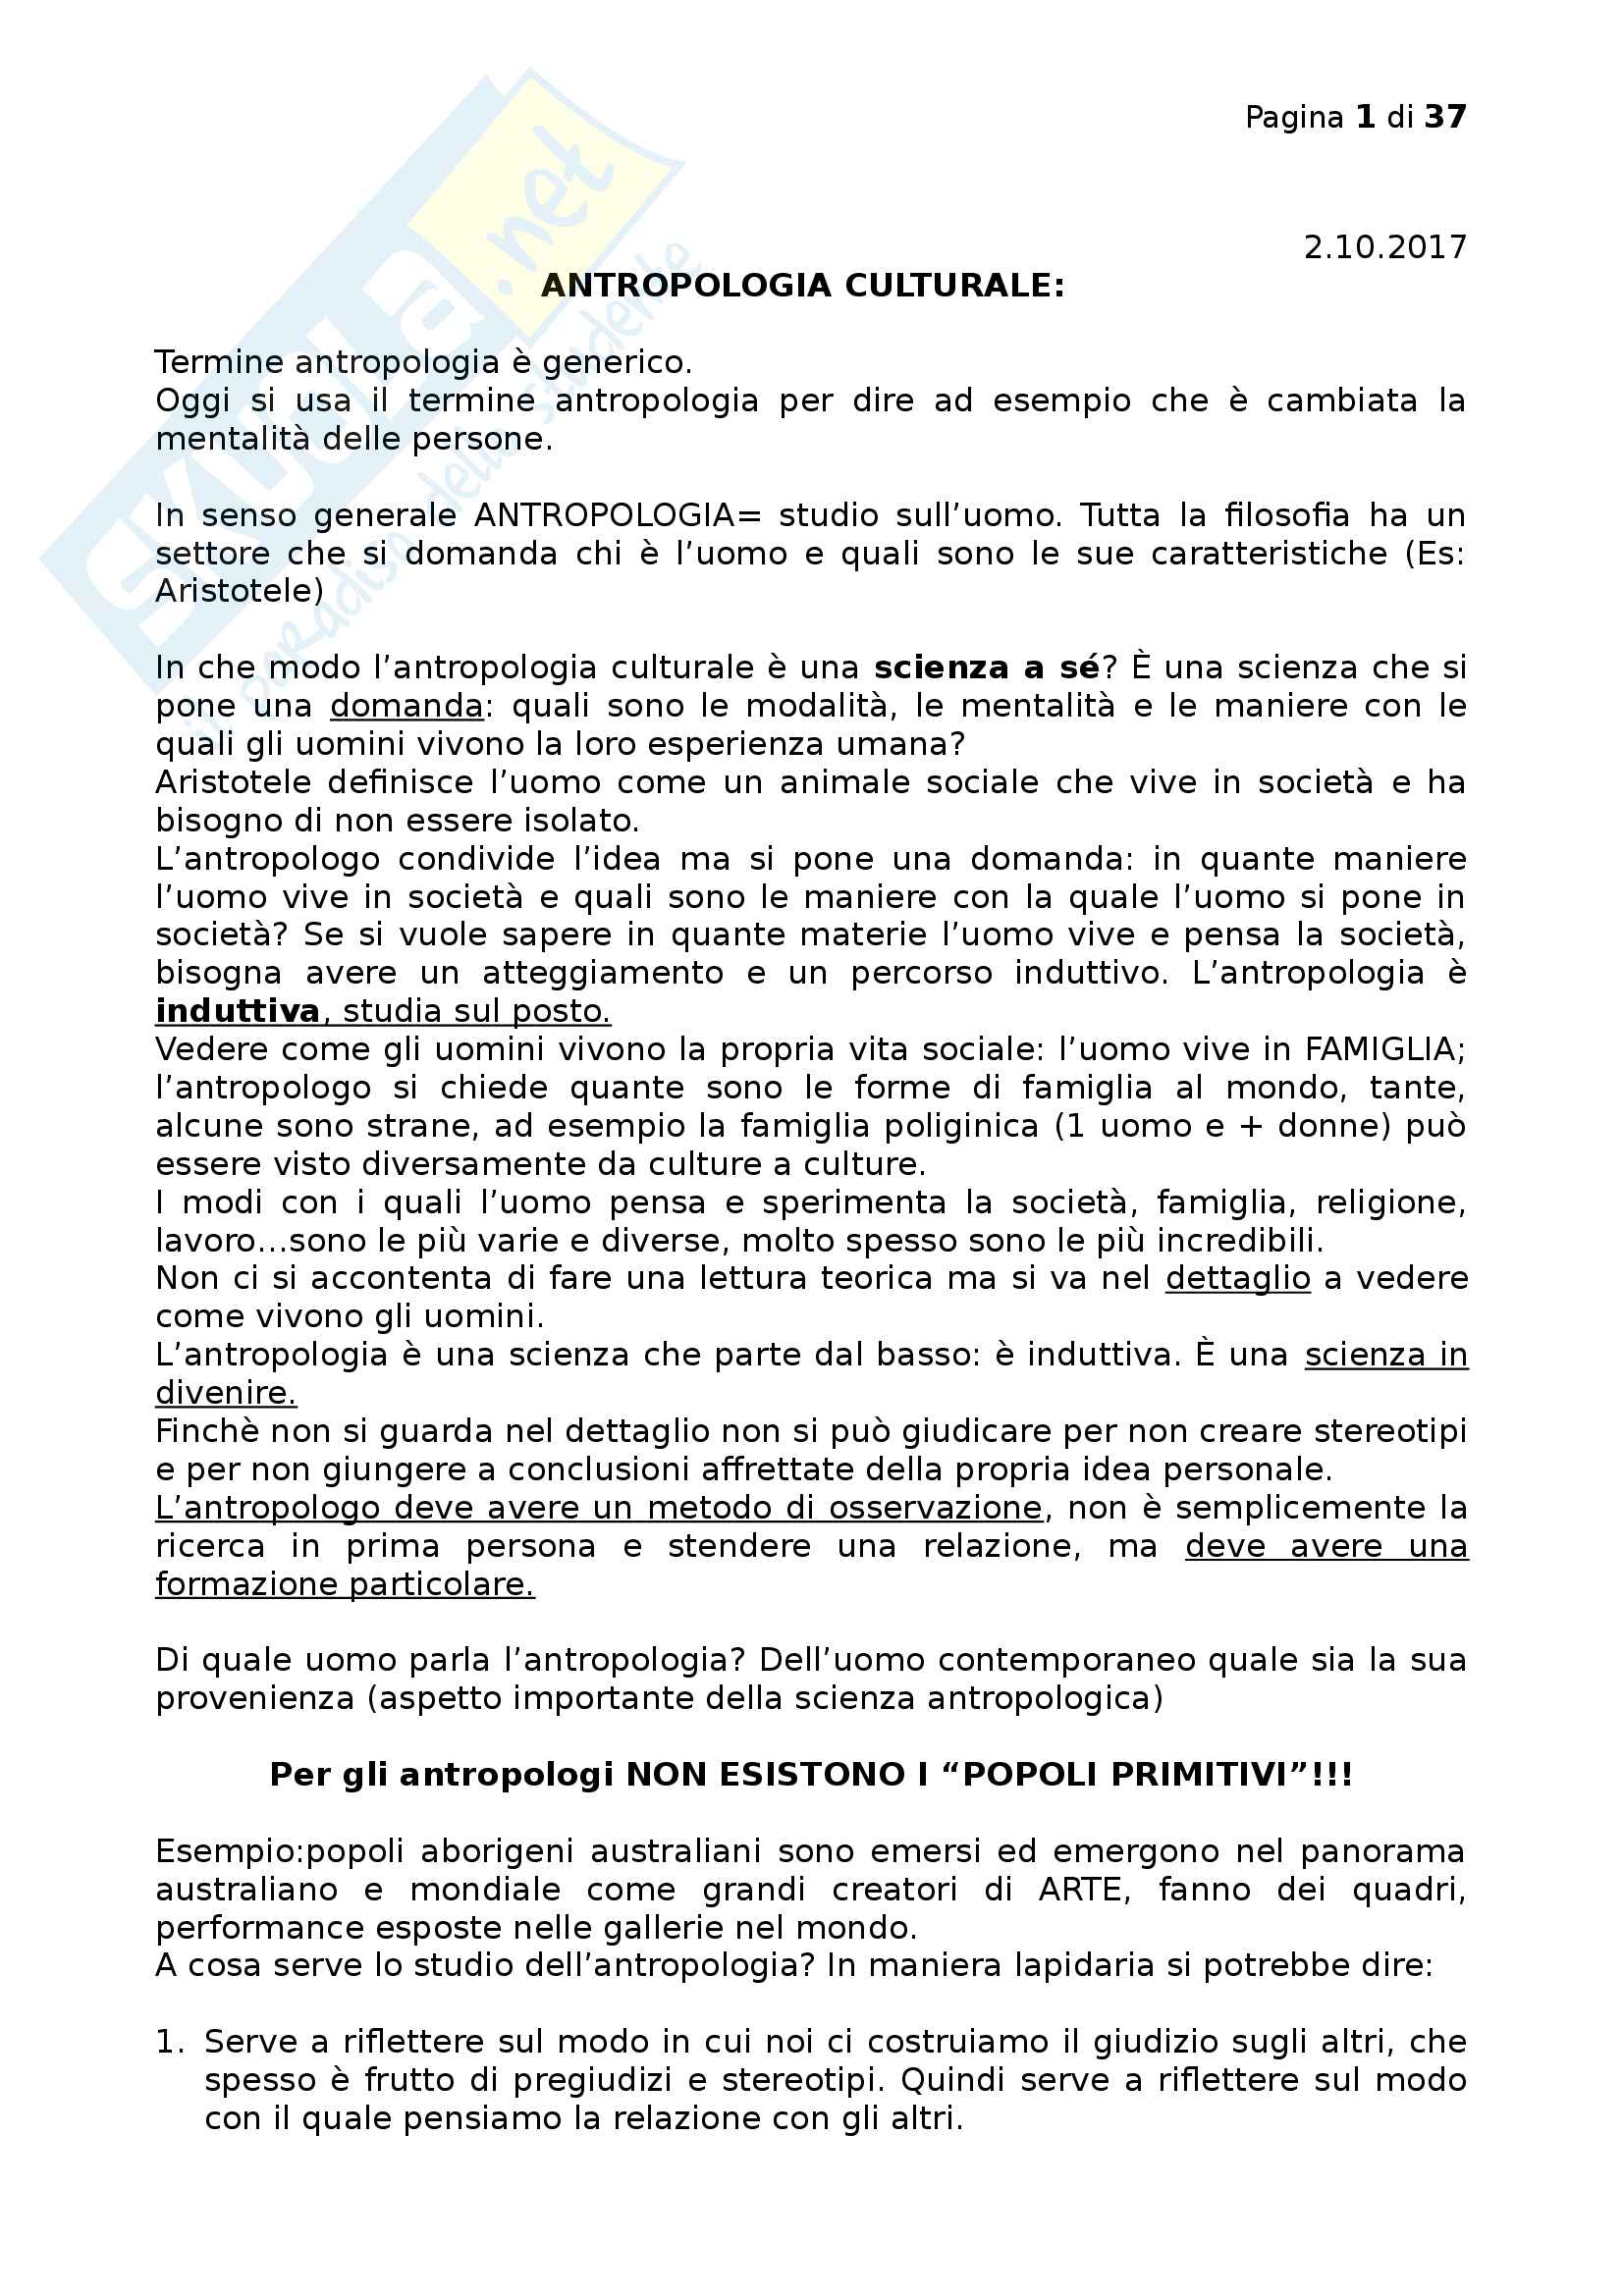 Antropologia culturale Pag. 1